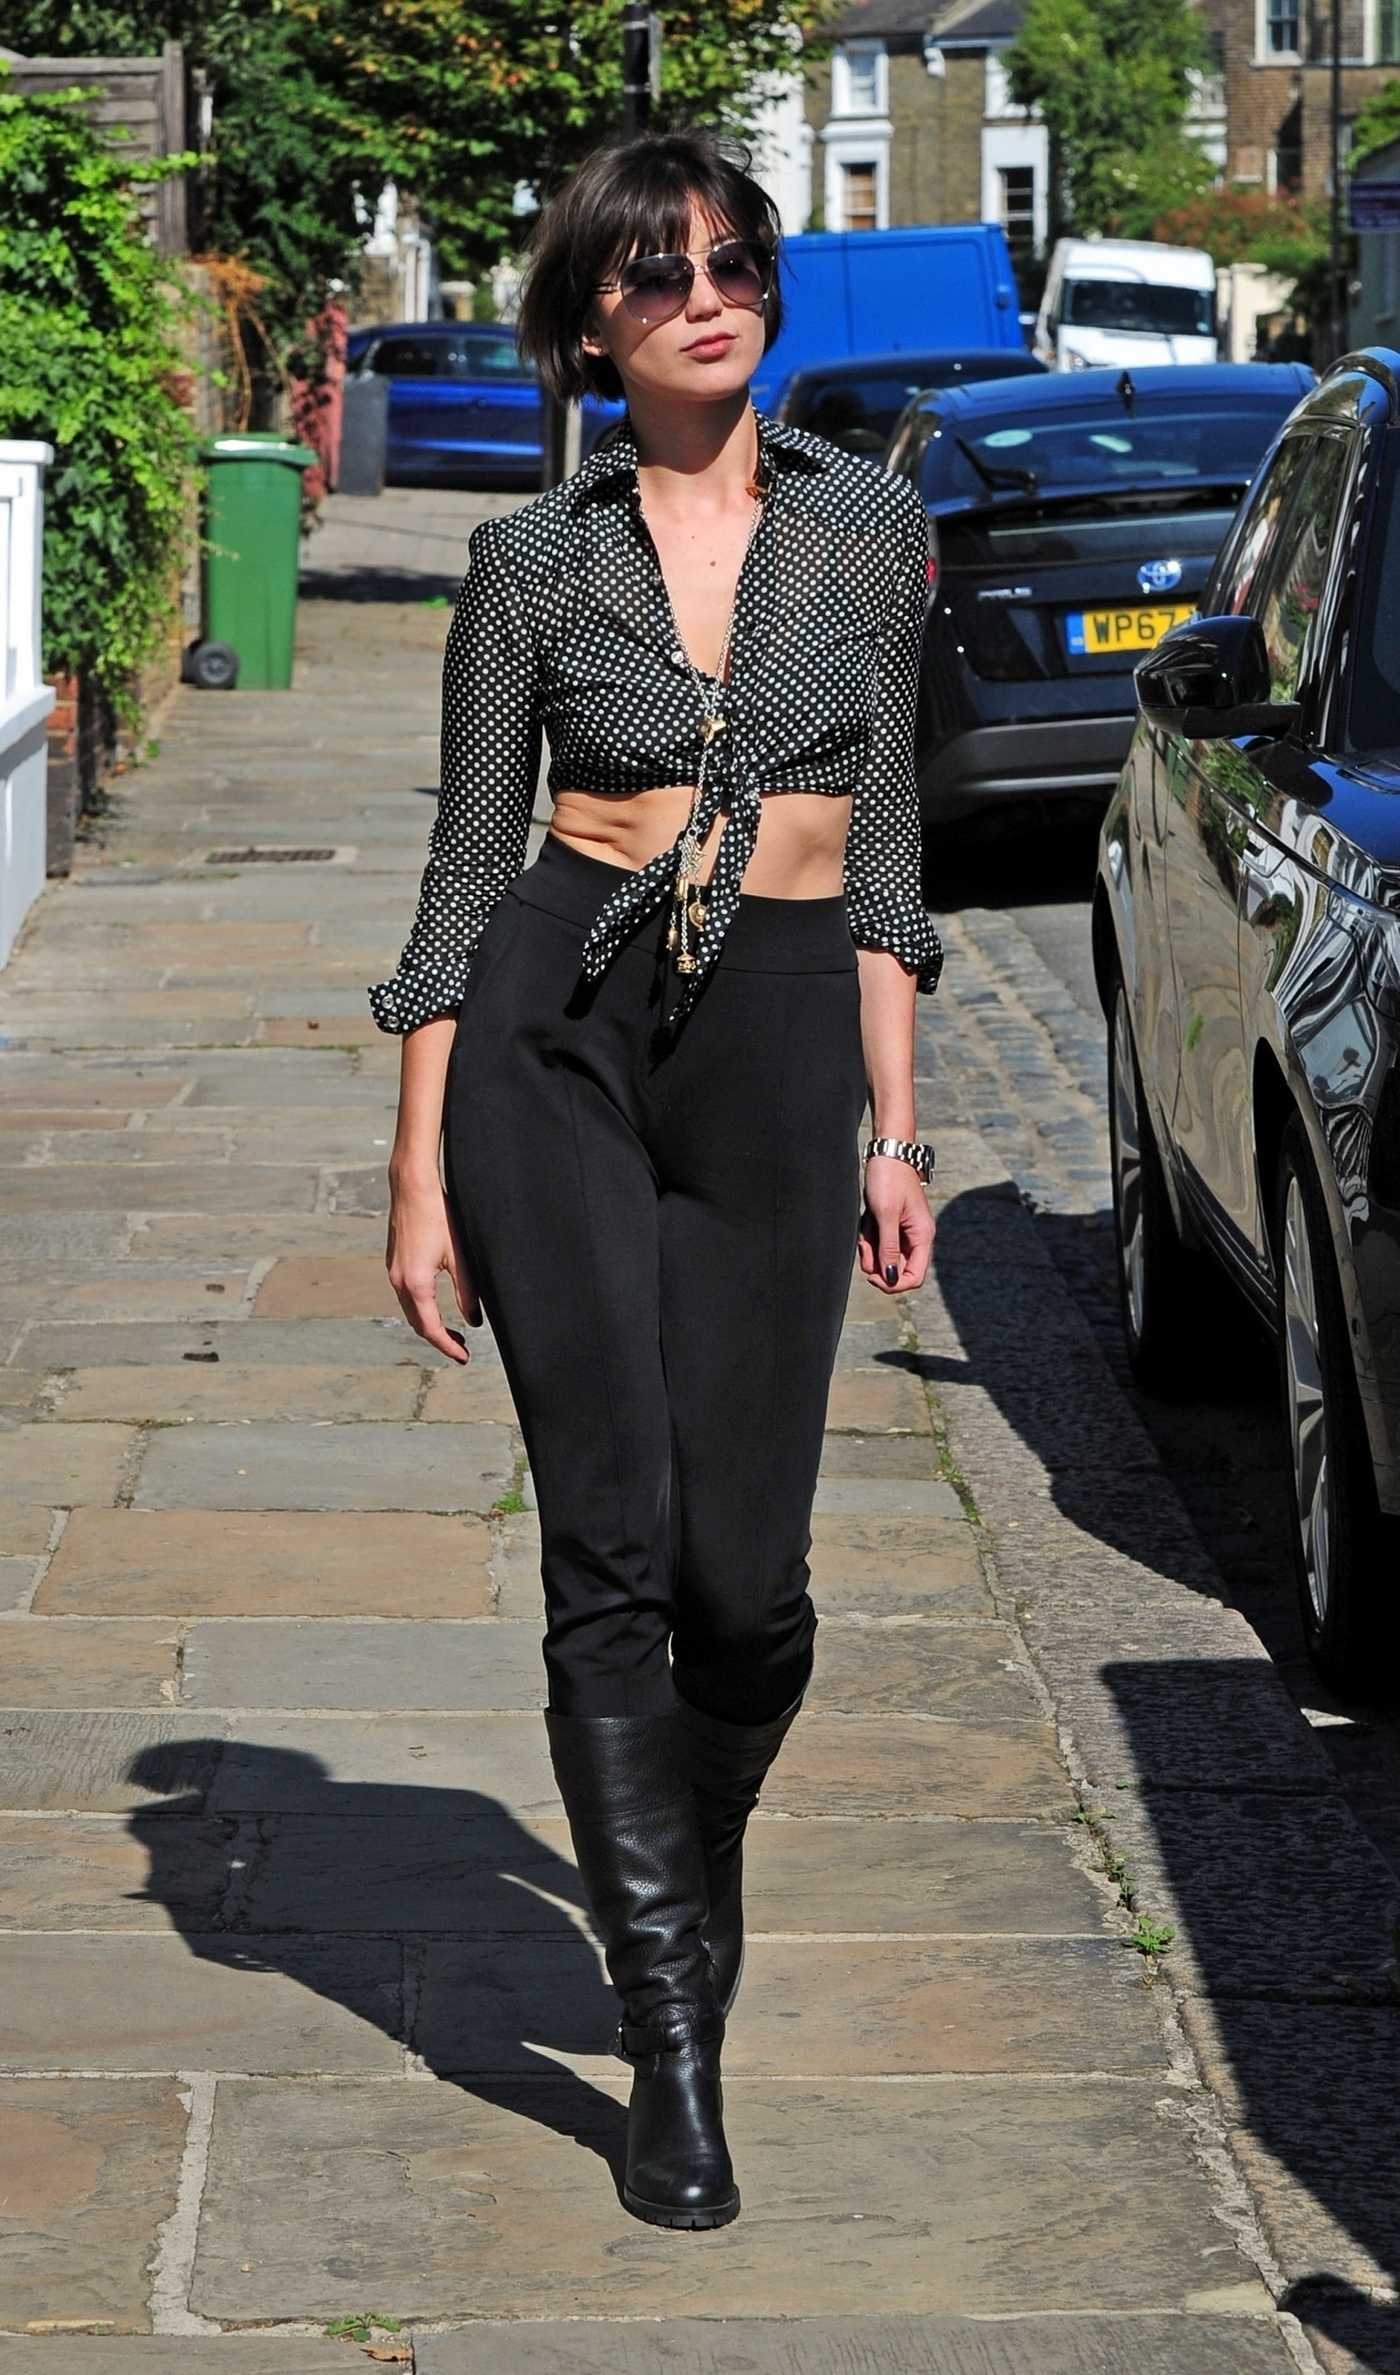 Daisy Lowe in a Cropped Polka Dot Blouse Was Seen Out in London 09/13/2018